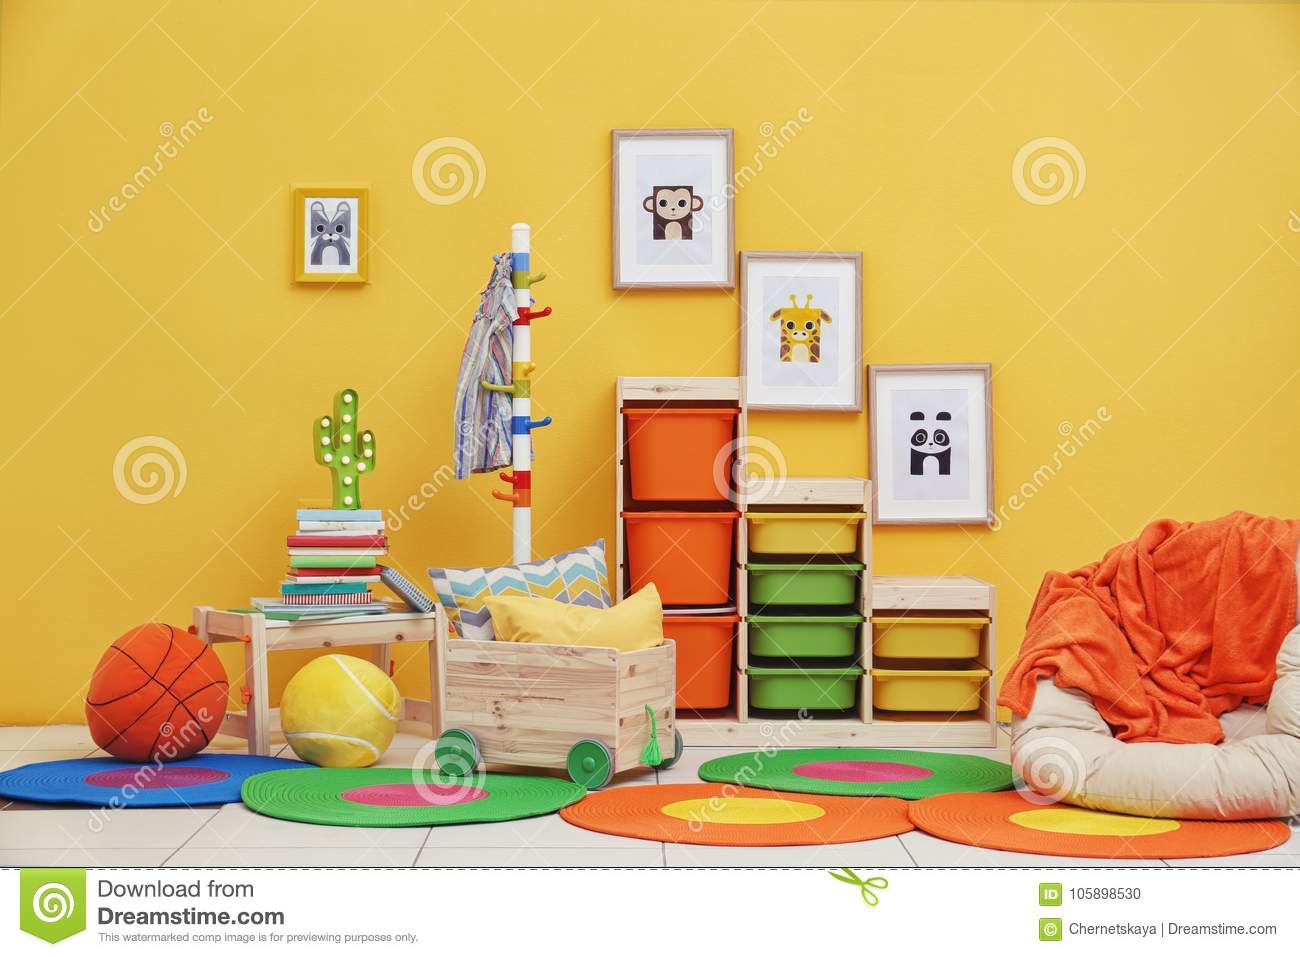 Baby room with pictures of animals